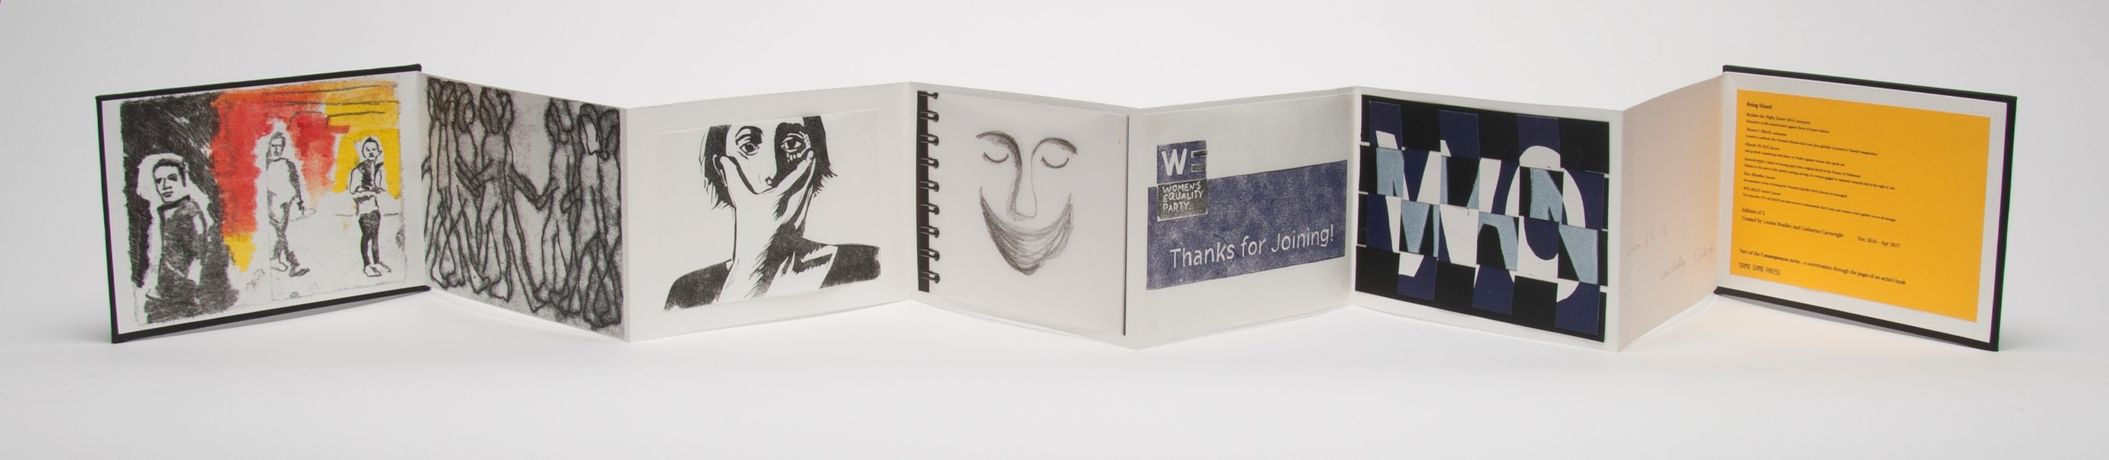 'Being Heard, artists' book by Leonie Bradley & Catherine Cartwright'